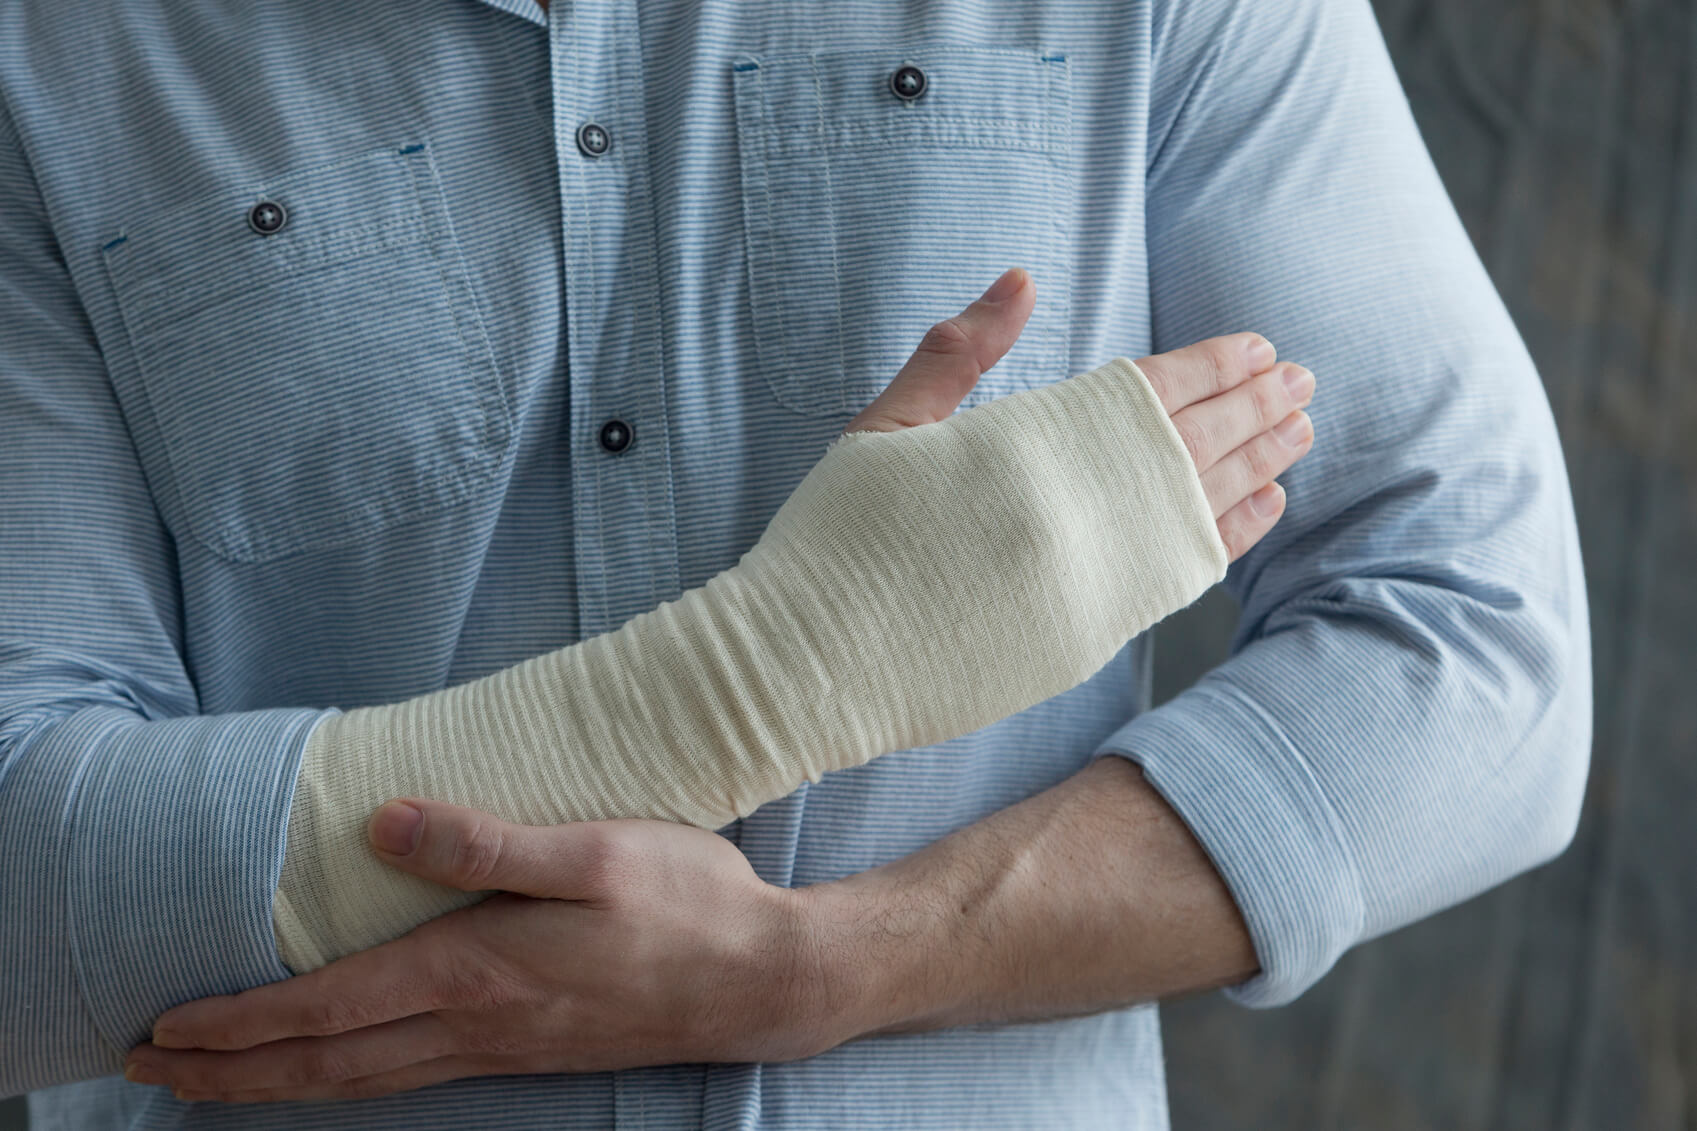 A man holds his bandaged wrist